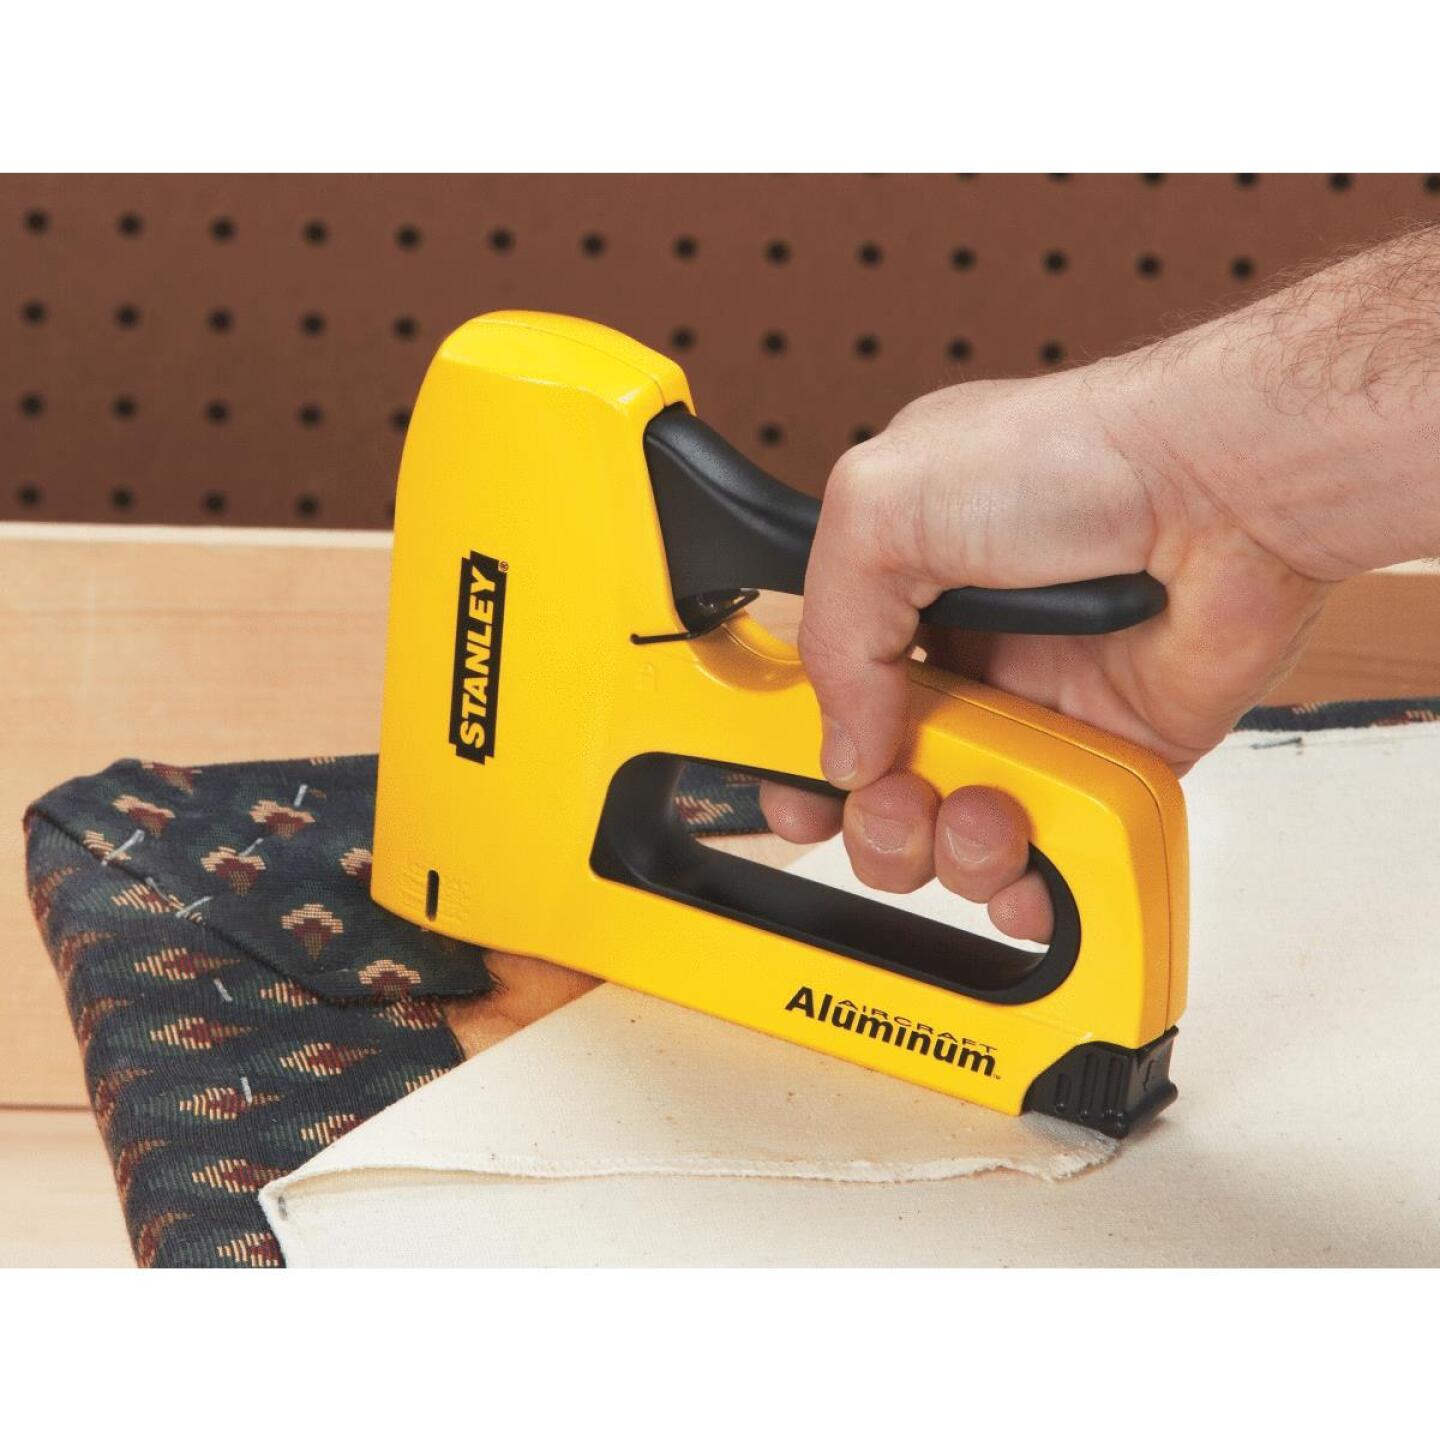 Stanley SharpShooter High-Visibility Heavy-Duty Staple Gun Image 2